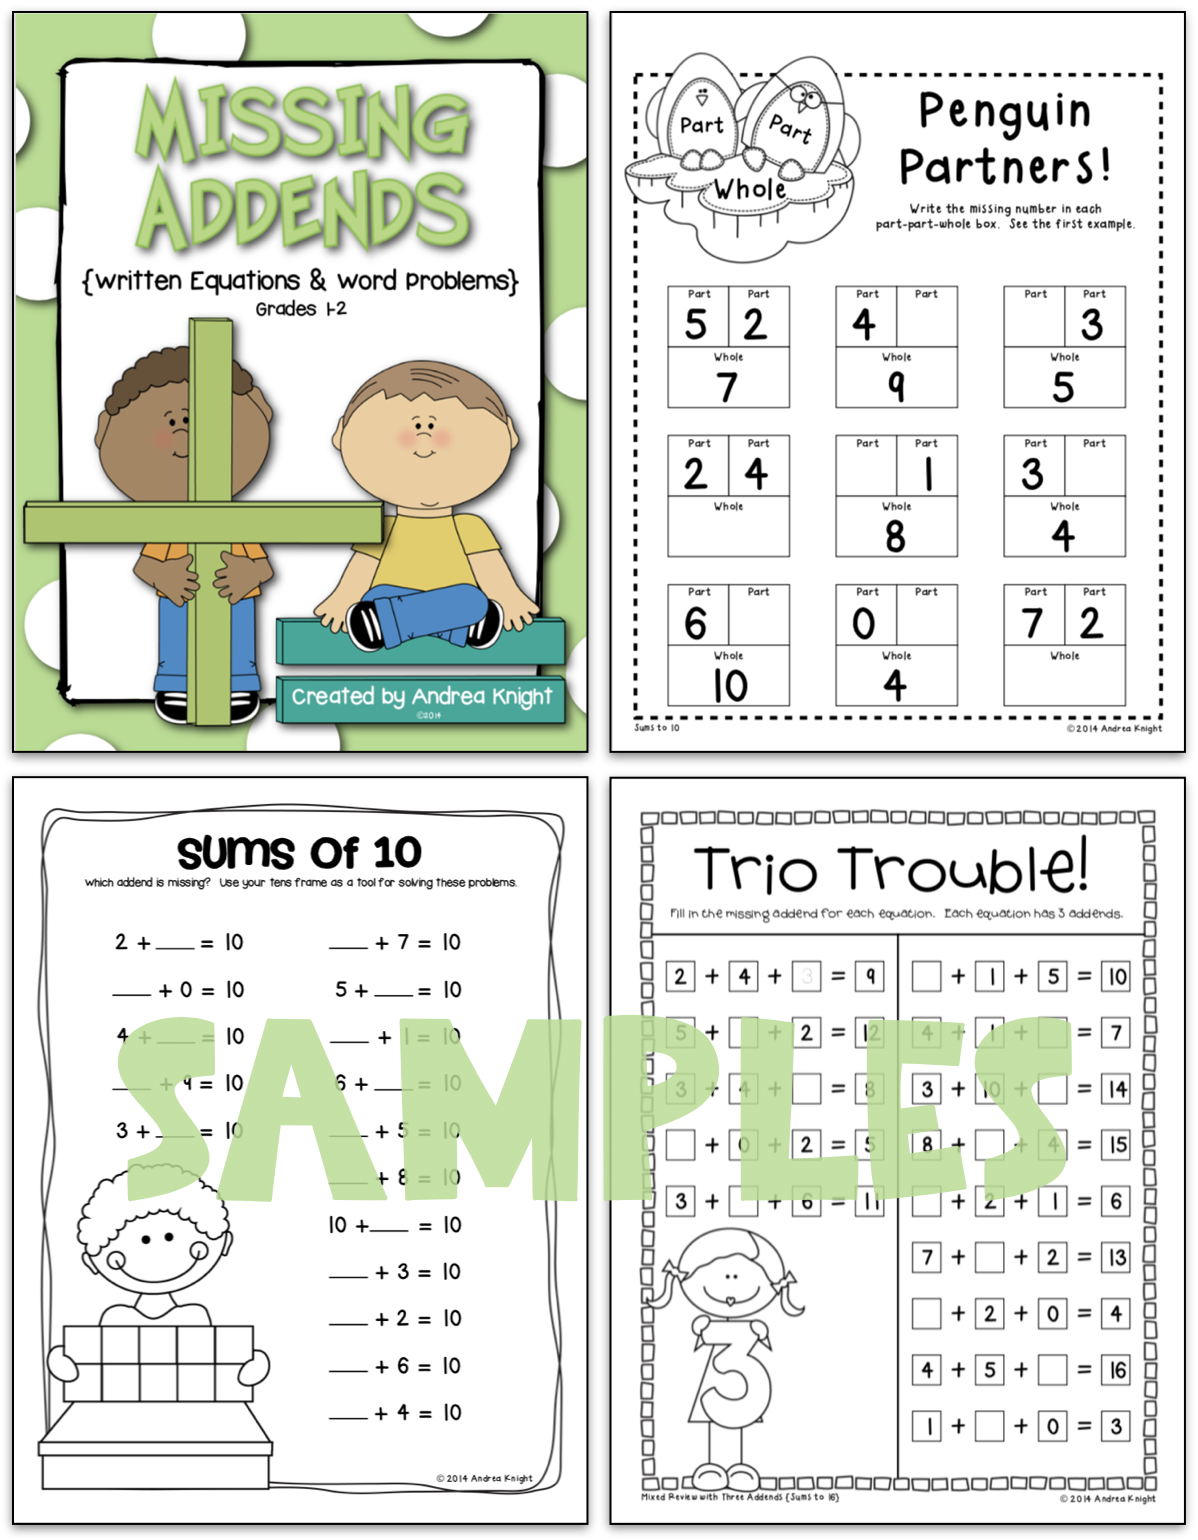 Missing Addends Math Practice Worksheets For Grades 1 2